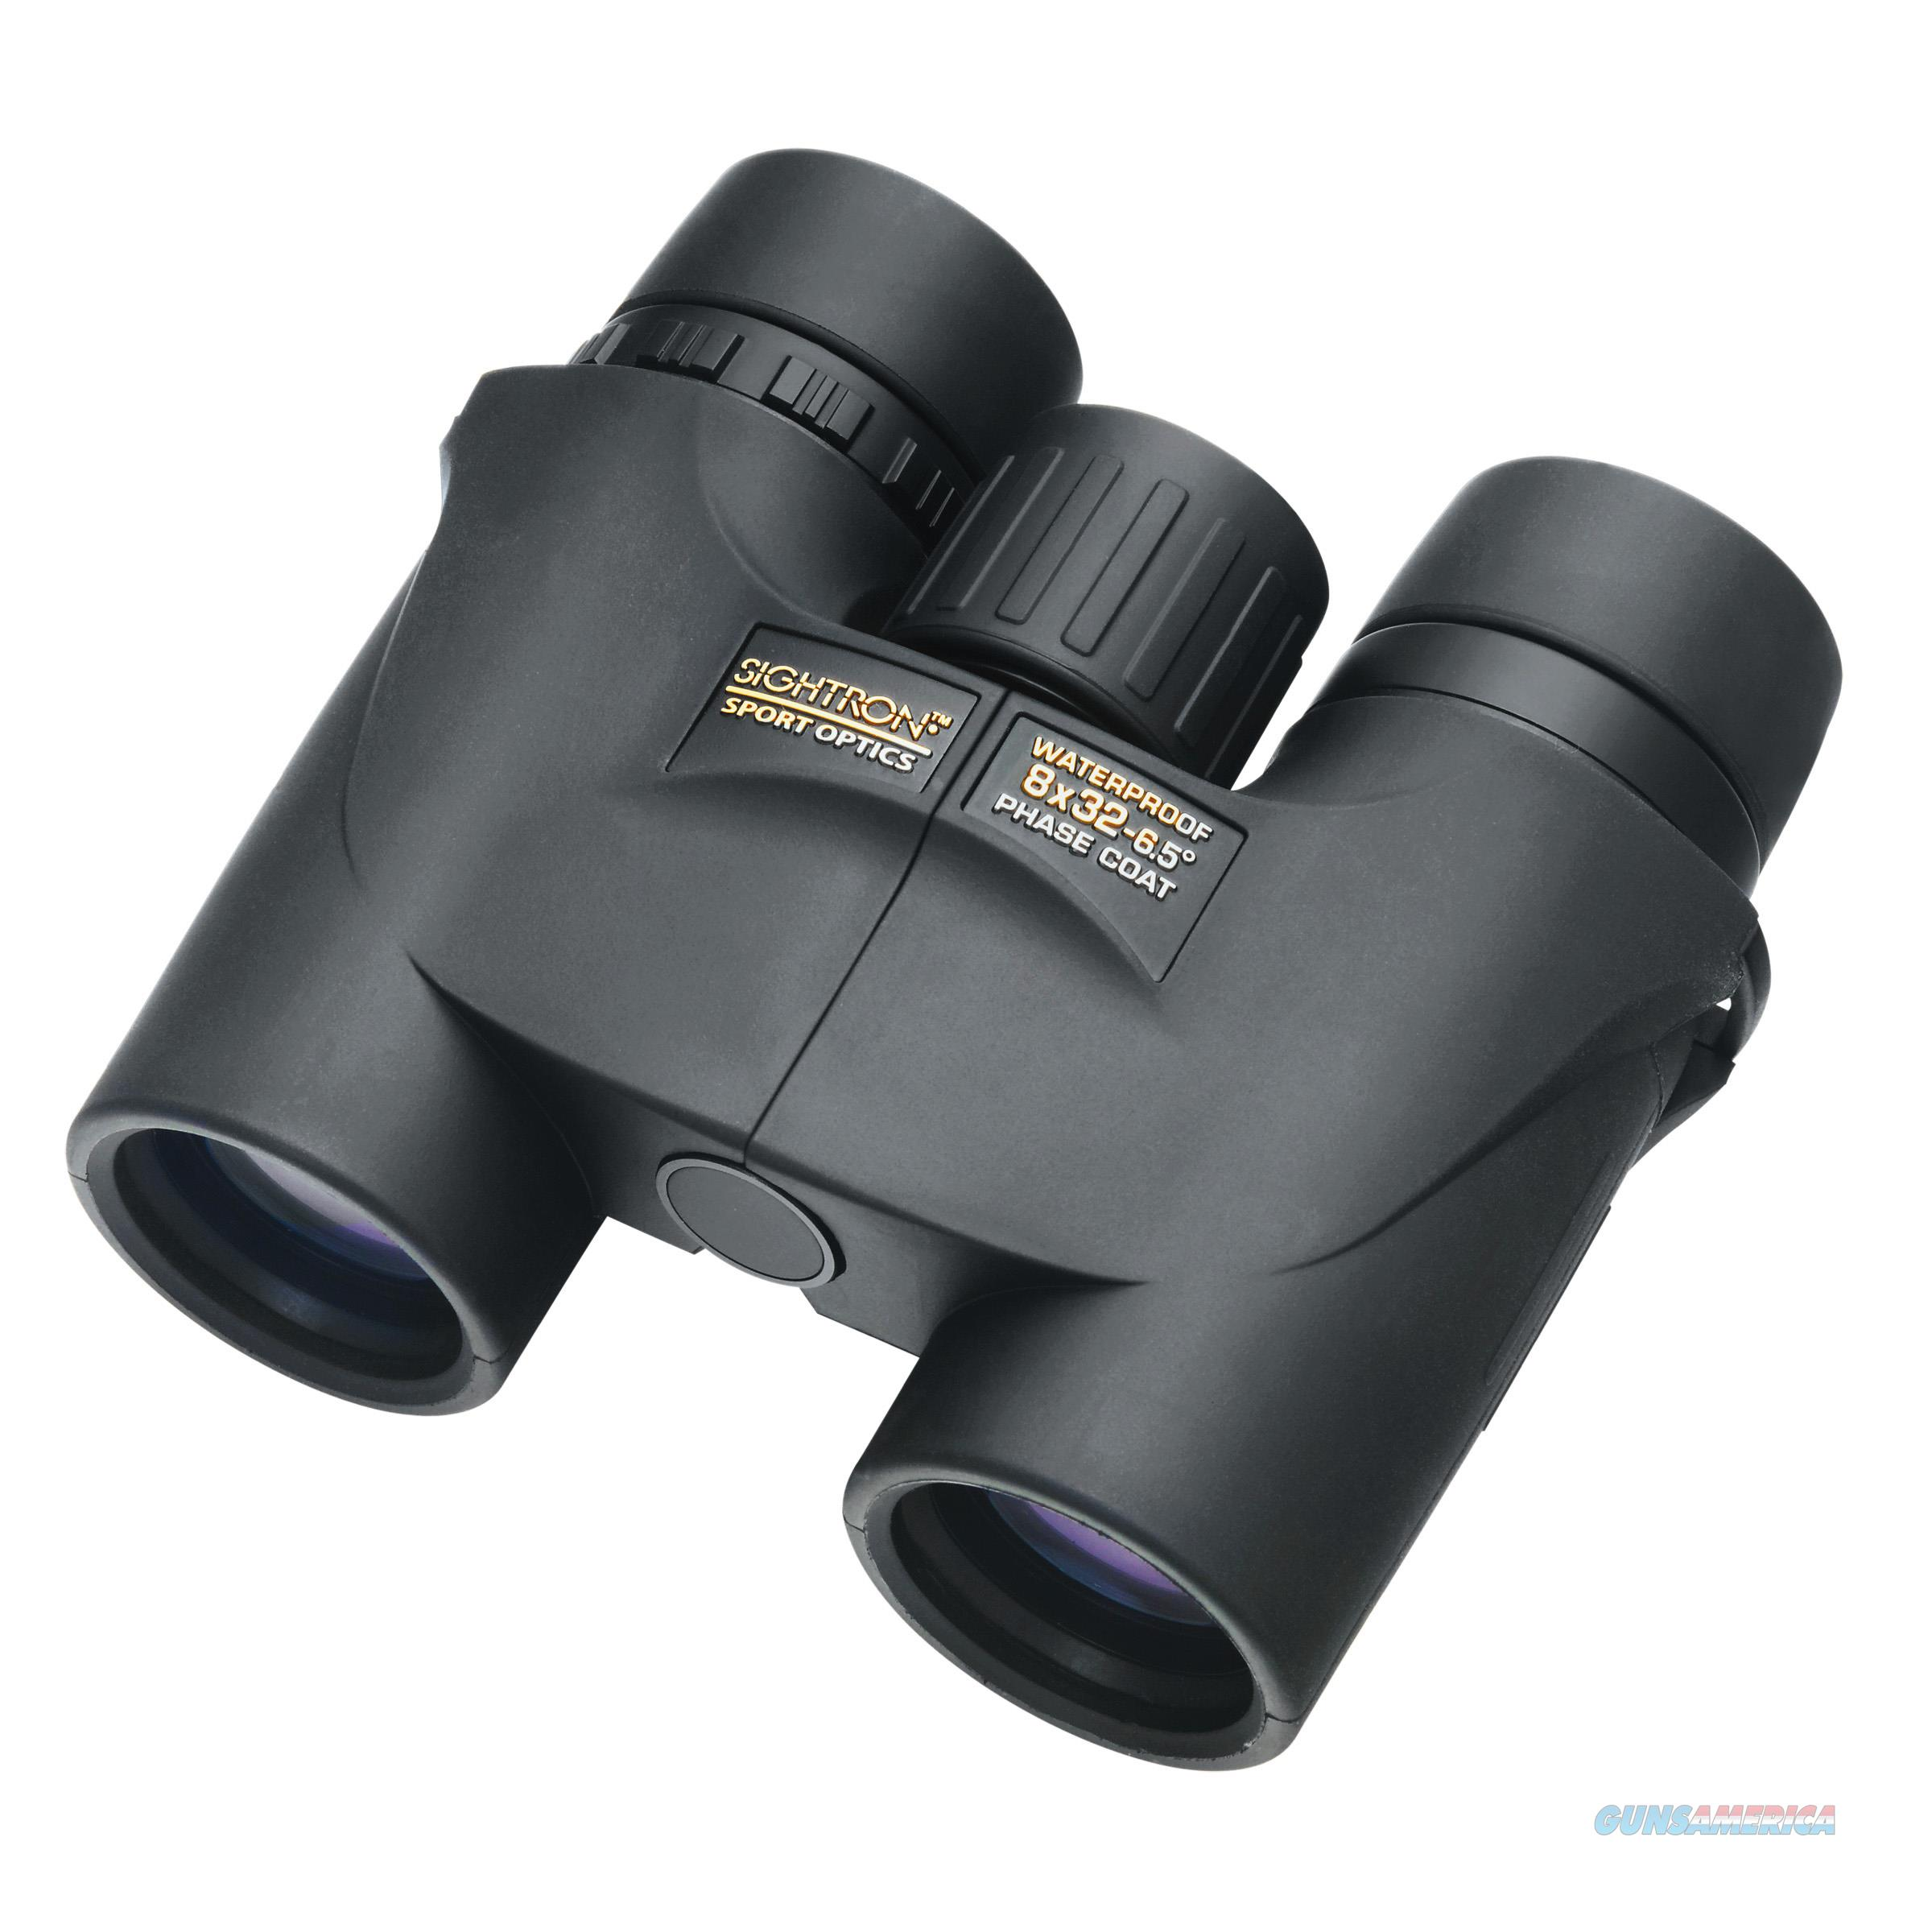 Sightron, Inc. Siii Ms Series Binocular 25152  Non-Guns > Scopes/Mounts/Rings & Optics > Non-Scope Optics > Binoculars